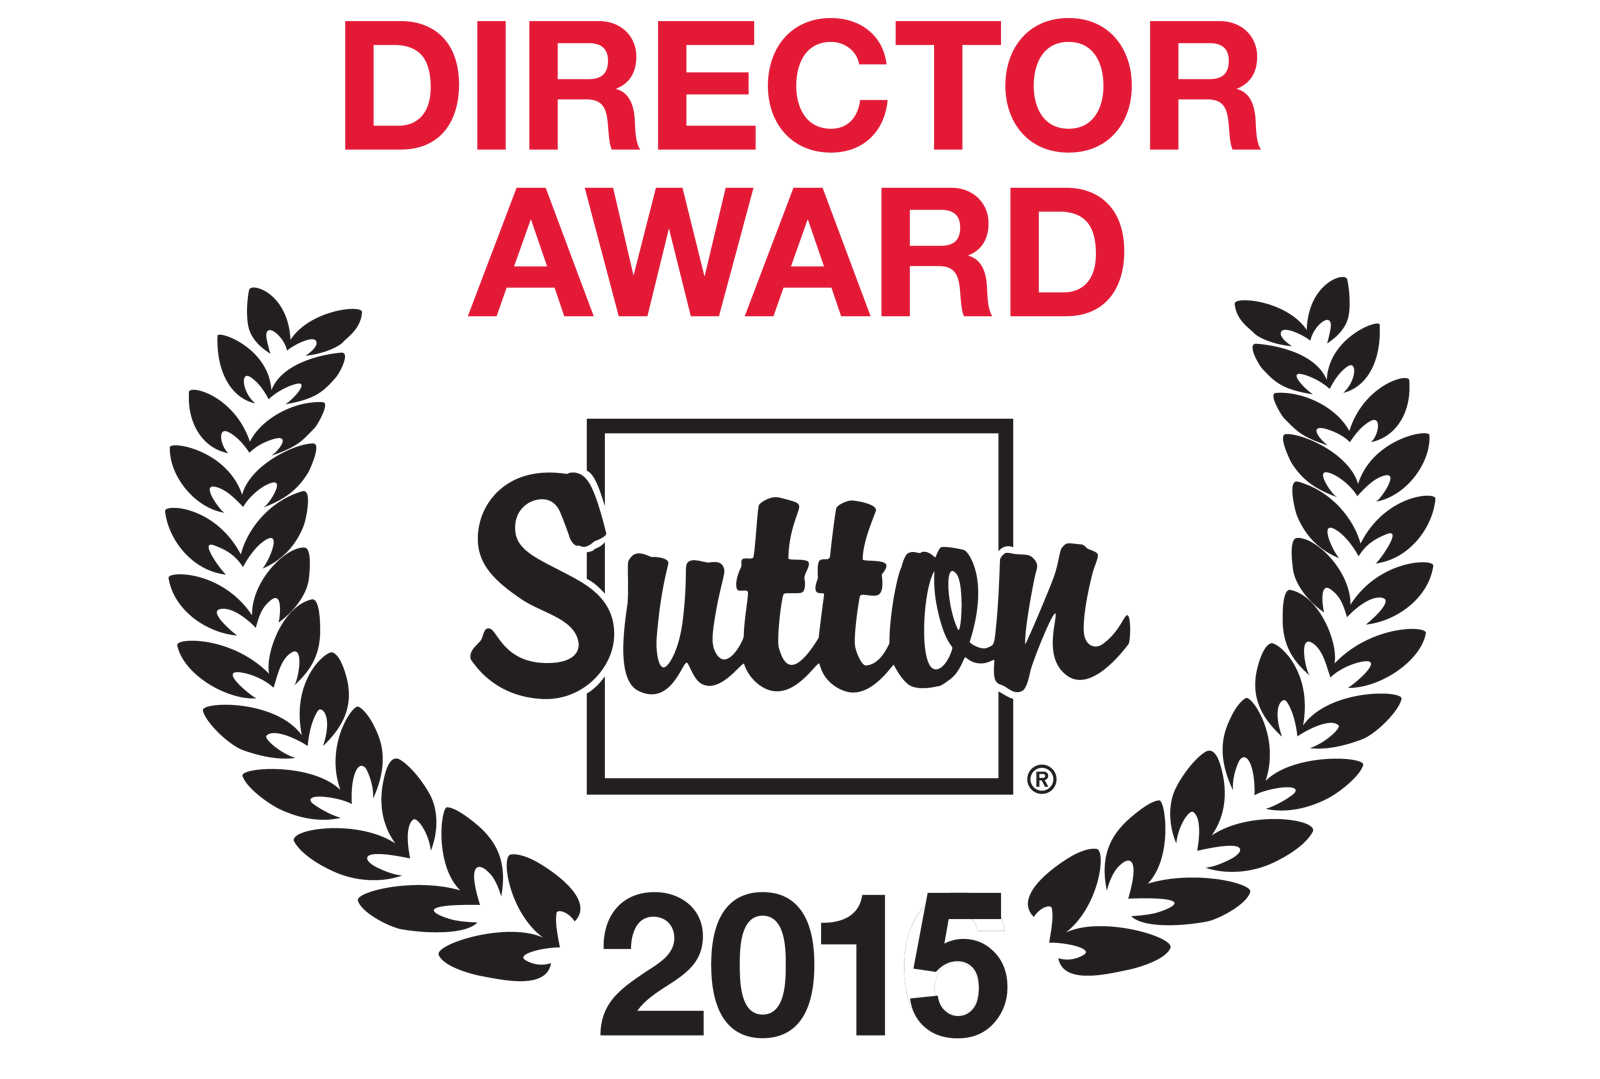 Director Award Sutton 2015